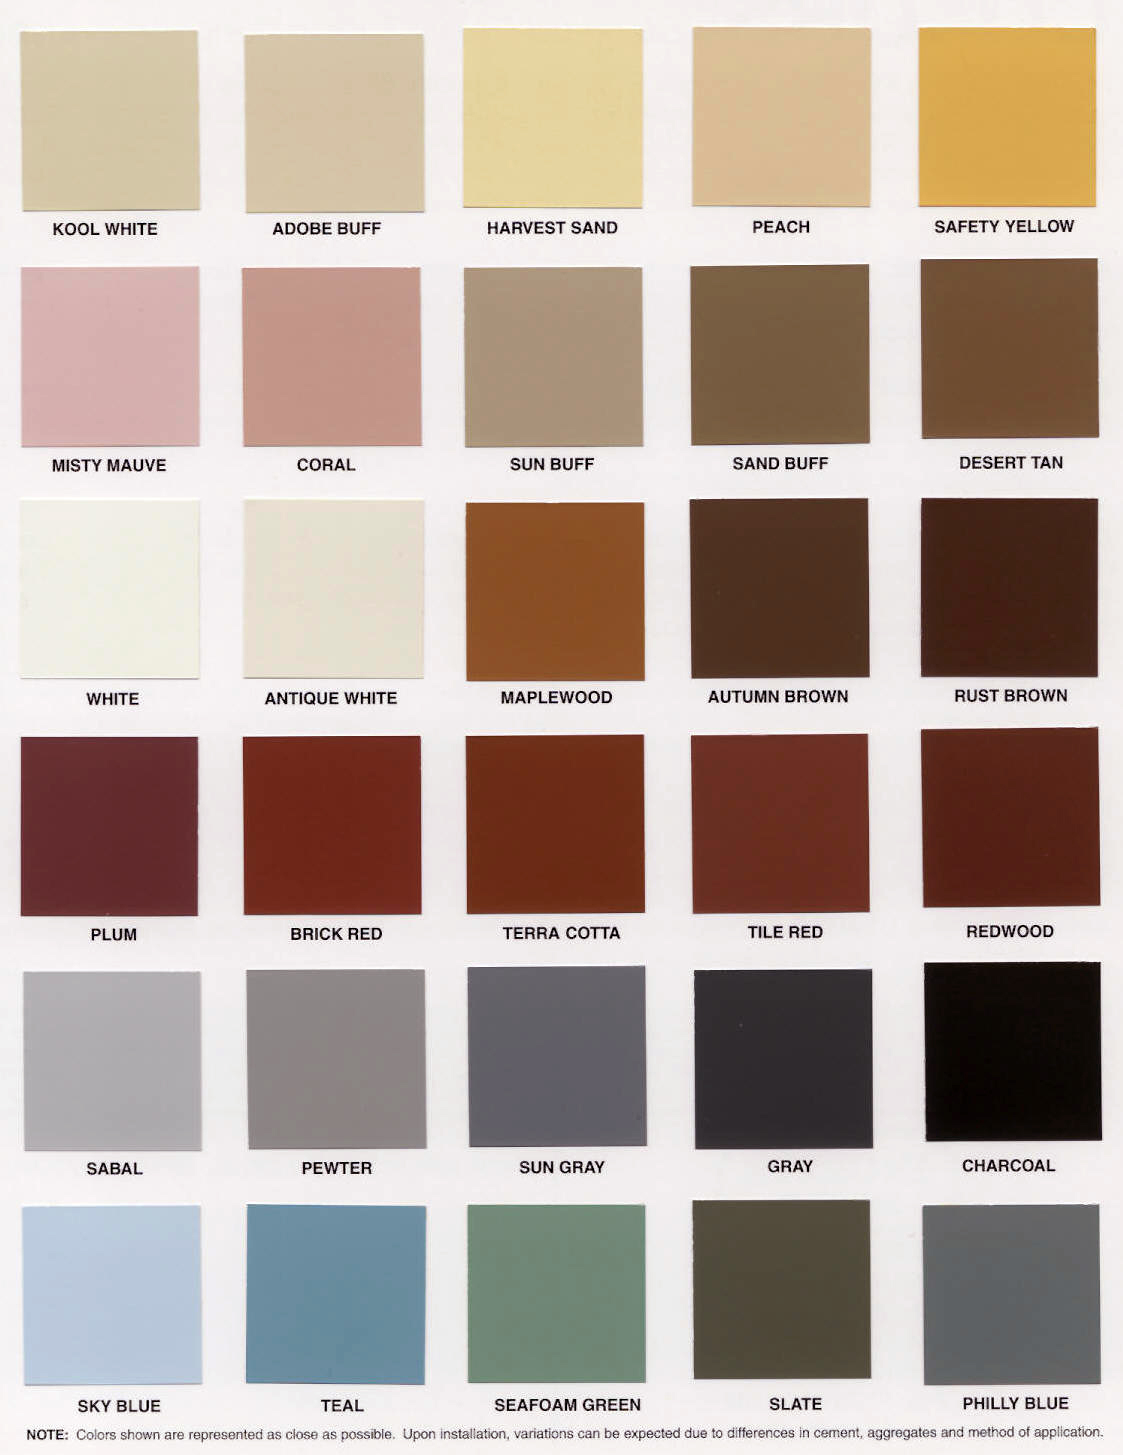 Lowes deck colors deck design and ideas lowes deck colors nvjuhfo Image collections